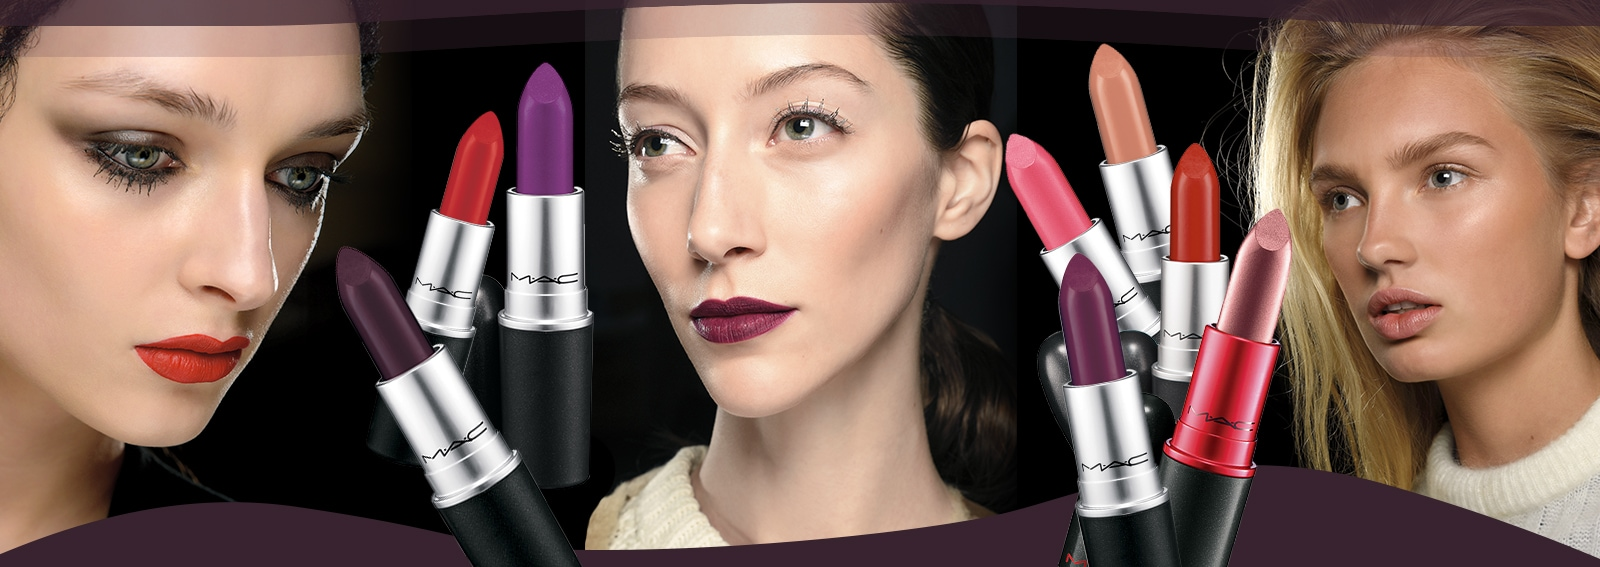 cover-i-10-rossetti-mac-cosmetics-desktop